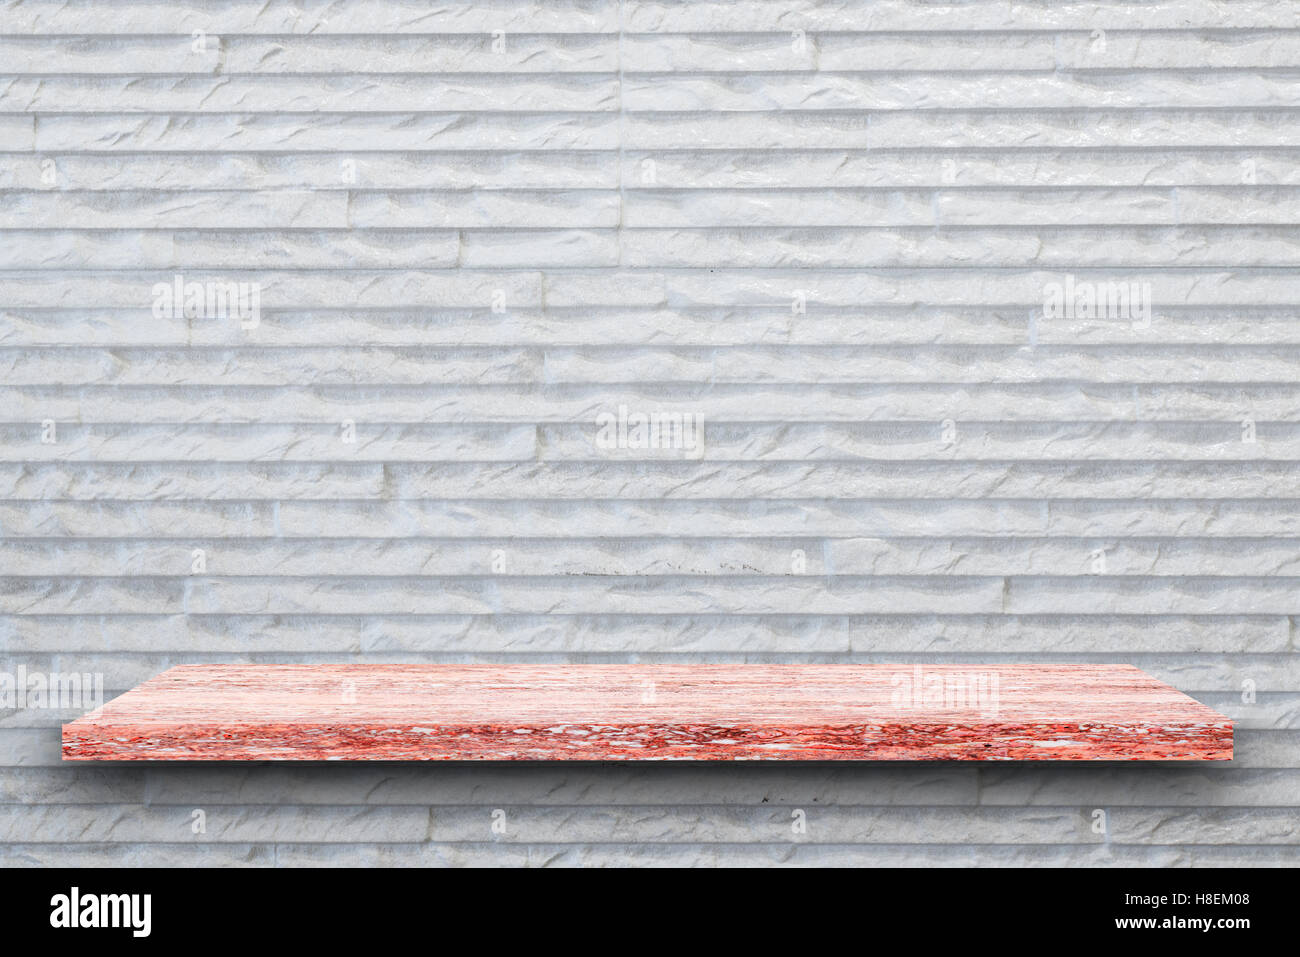 Stone Counter Top Stockfotos & Stone Counter Top Bilder - Alamy